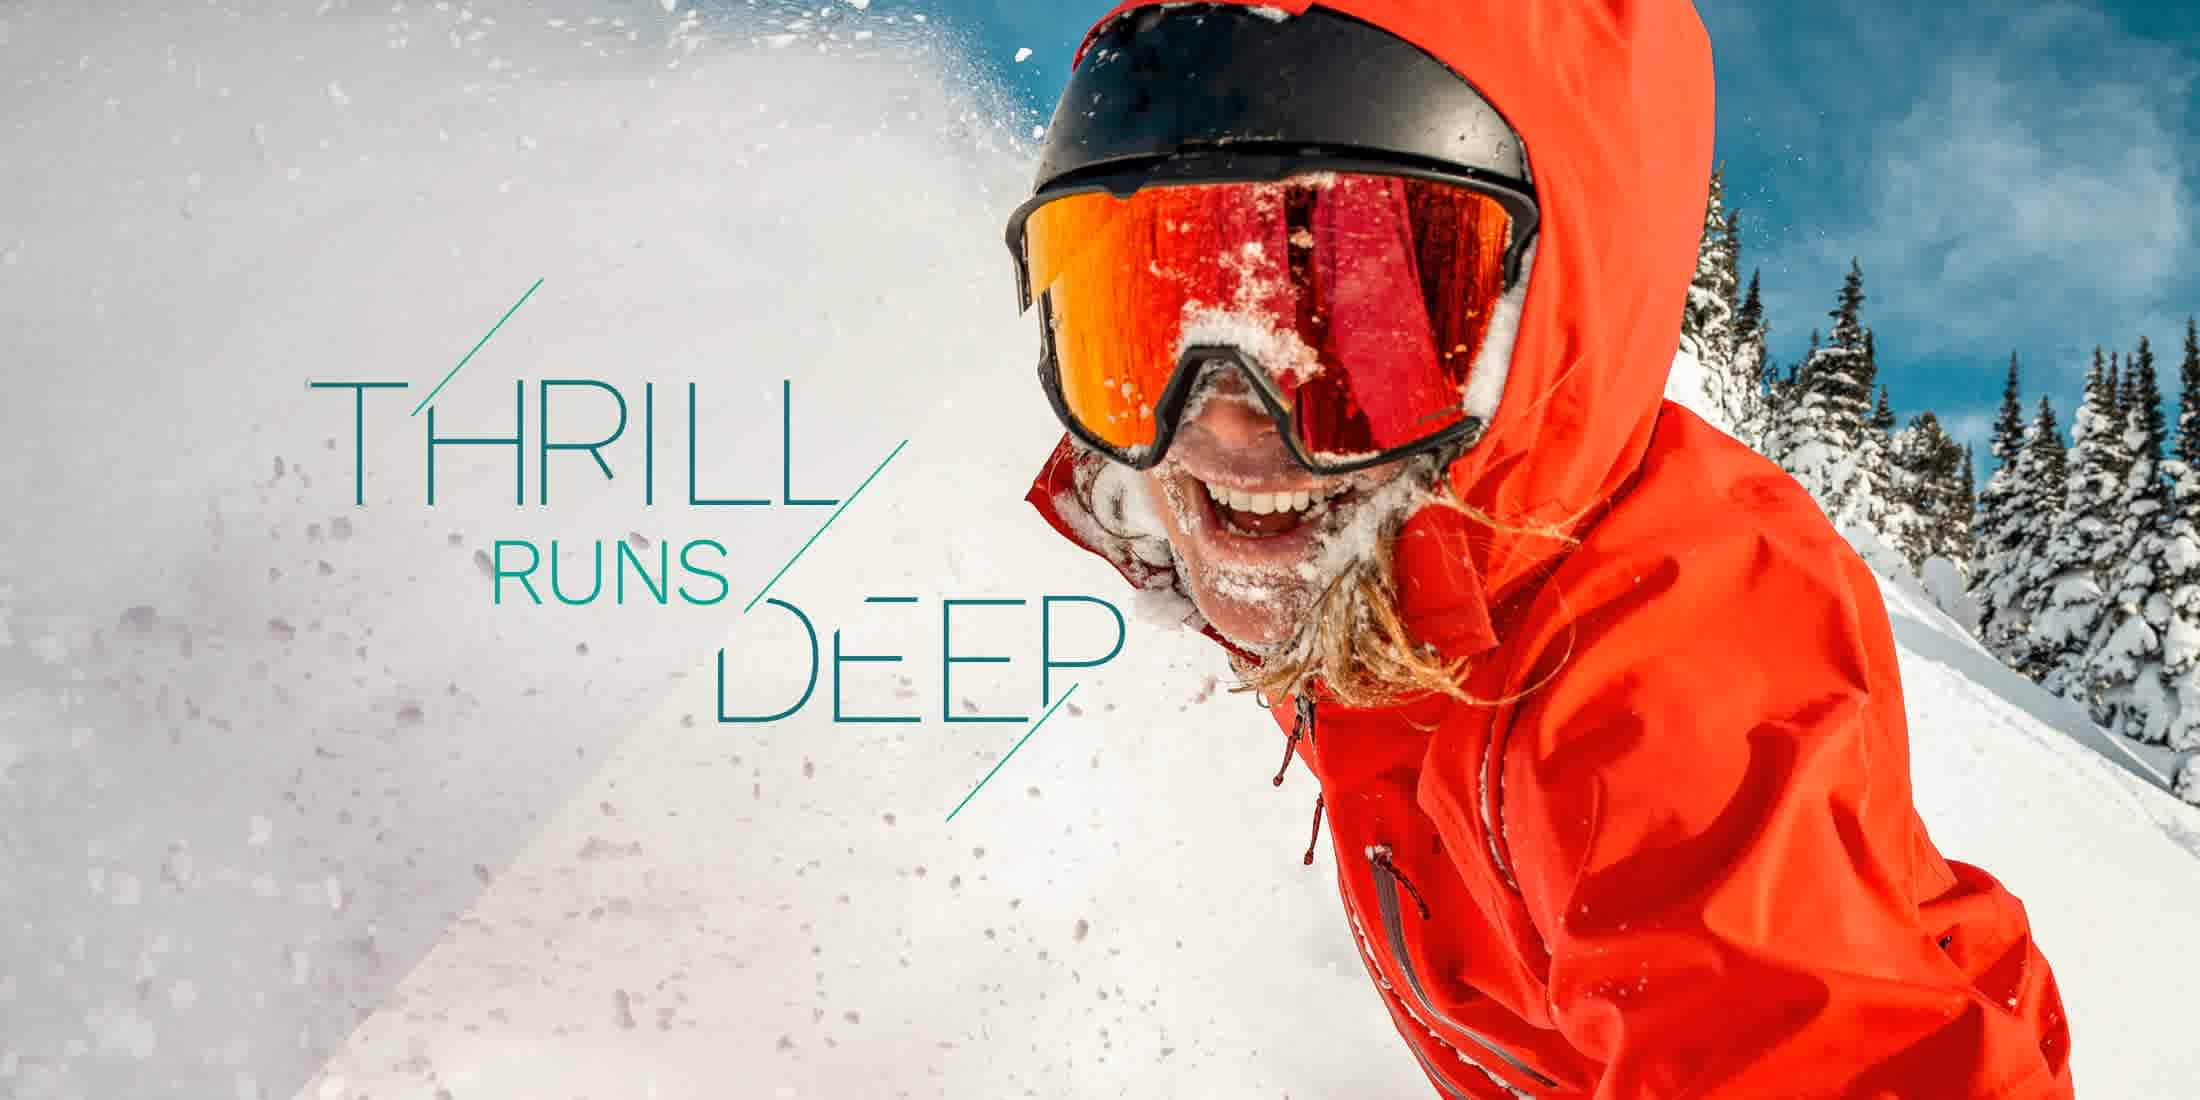 Thrill runs deep when skiing in Whistler BC Canada